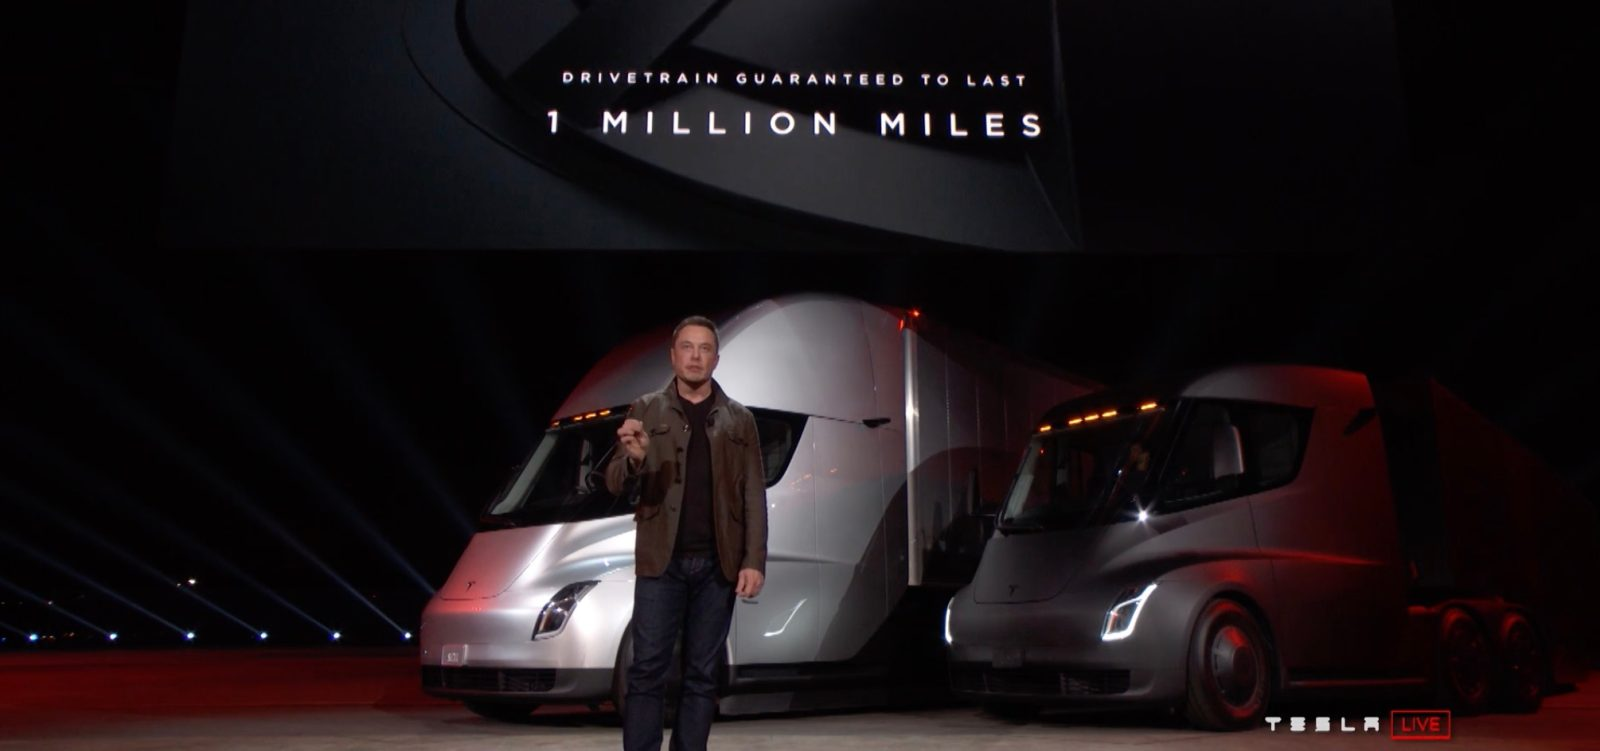 Tesla Semi Electrek Engine Diagram Is Clearing A Path For The Goal Of 1 Million Mile Electric Drivetrain